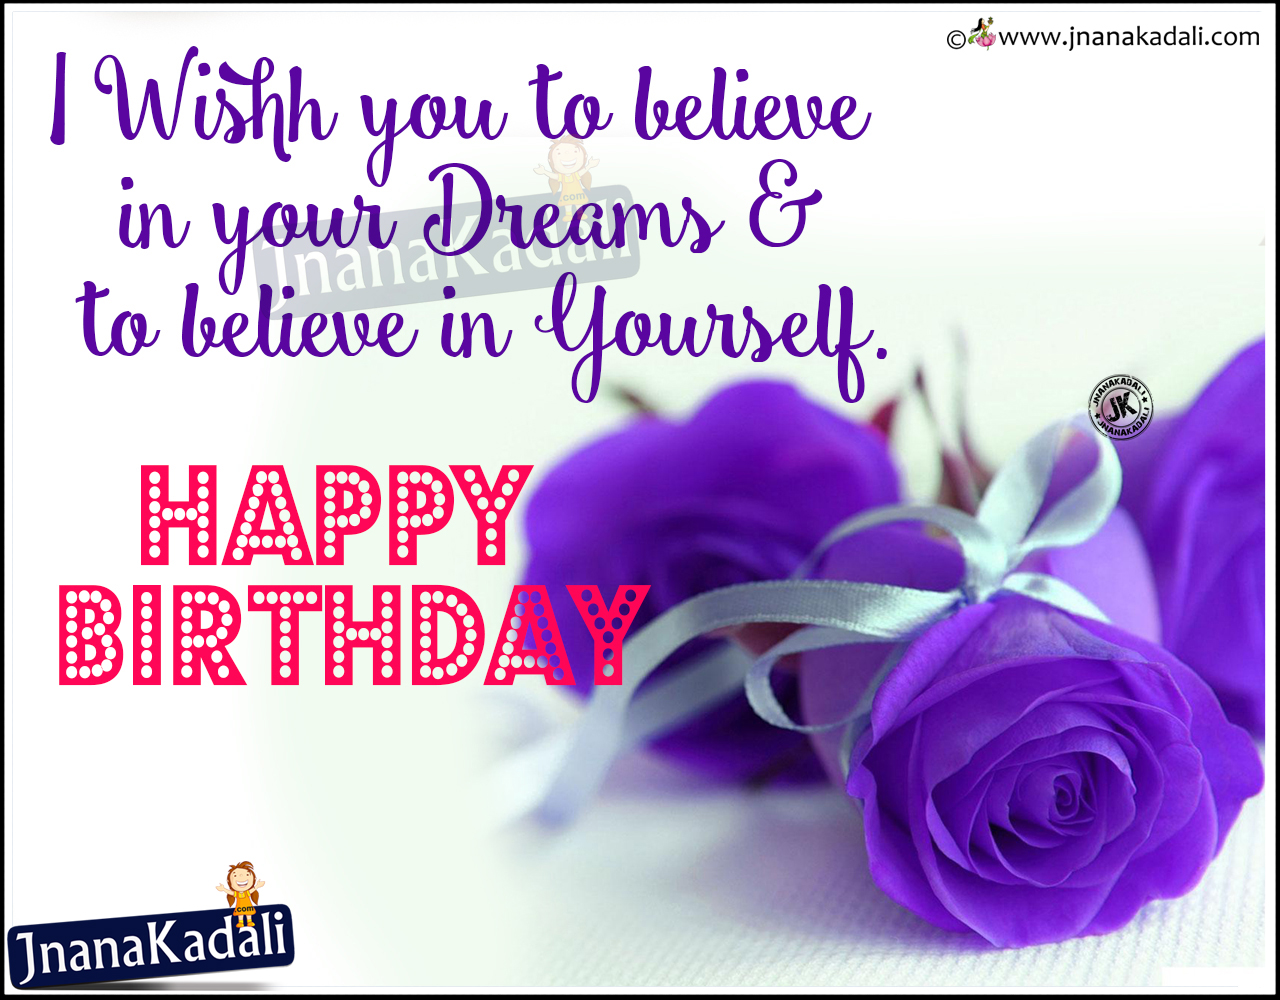 Best Birthday Quotes For Friend In English: Best Birthday Wishes Cards For Dearest Friends